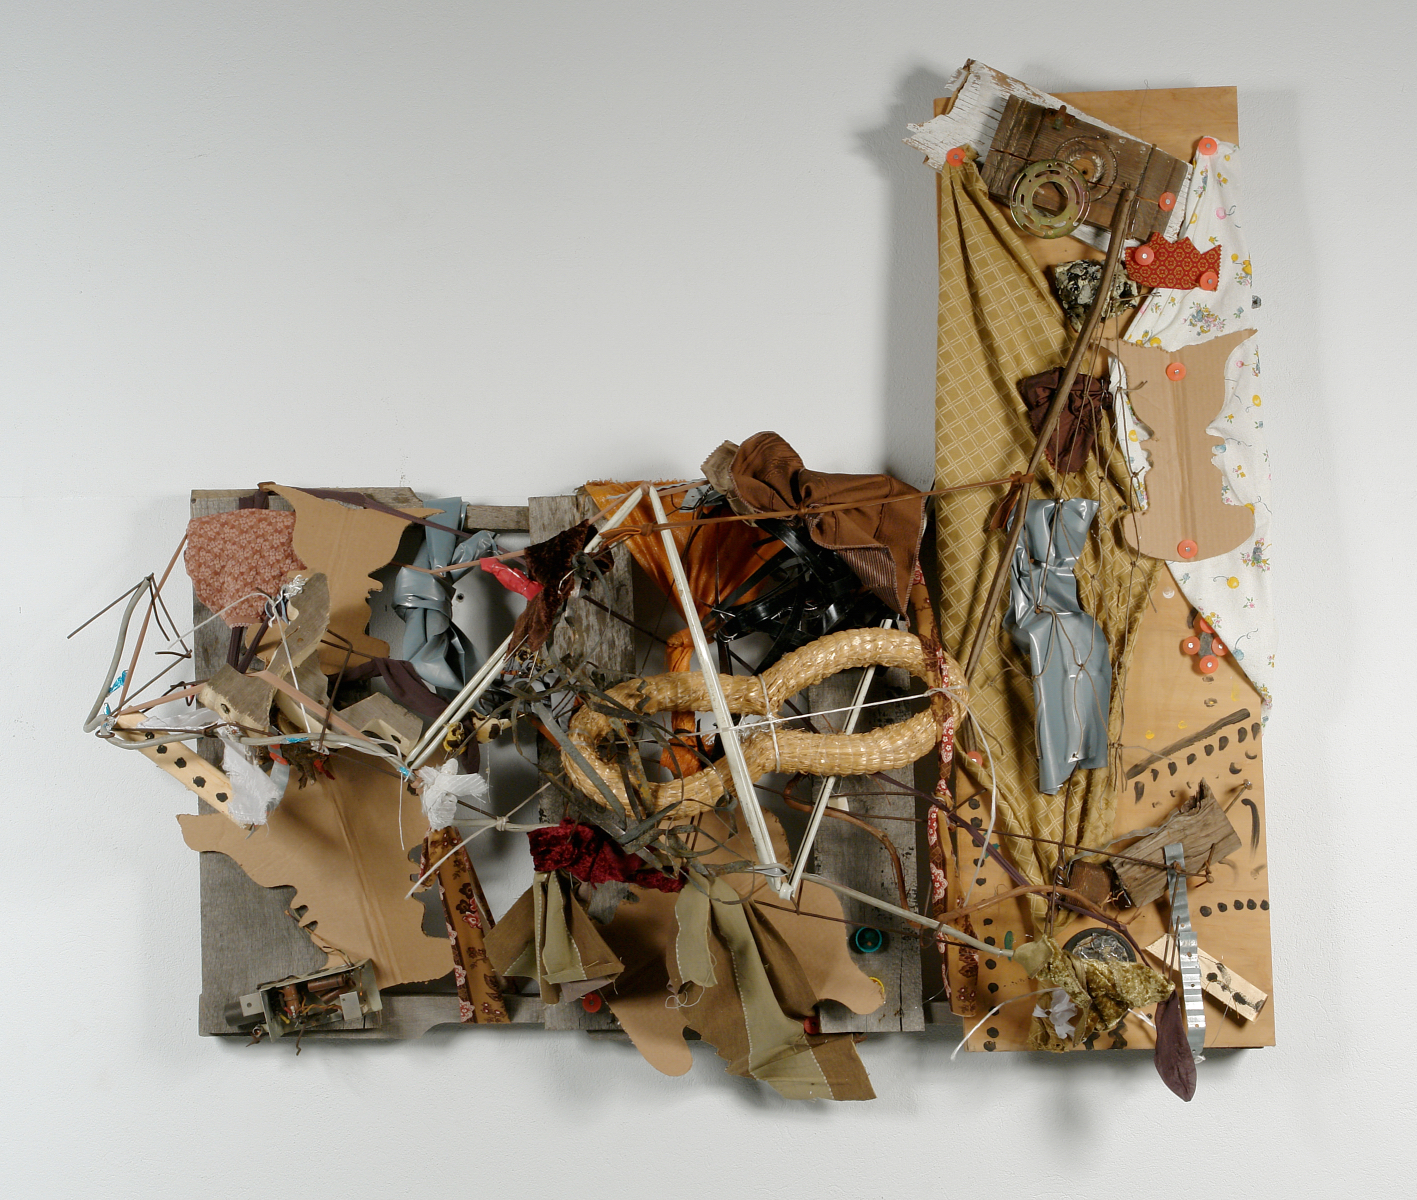 Lonnie Holley (American, b. 1960),  You Alley Thing , 2007, Mixed media, 52 x 61 x 16 in., Collection of Intuit: The Center for Intuitive and Outsider Art, Gift of Lonnie Holley,   2007.7.1